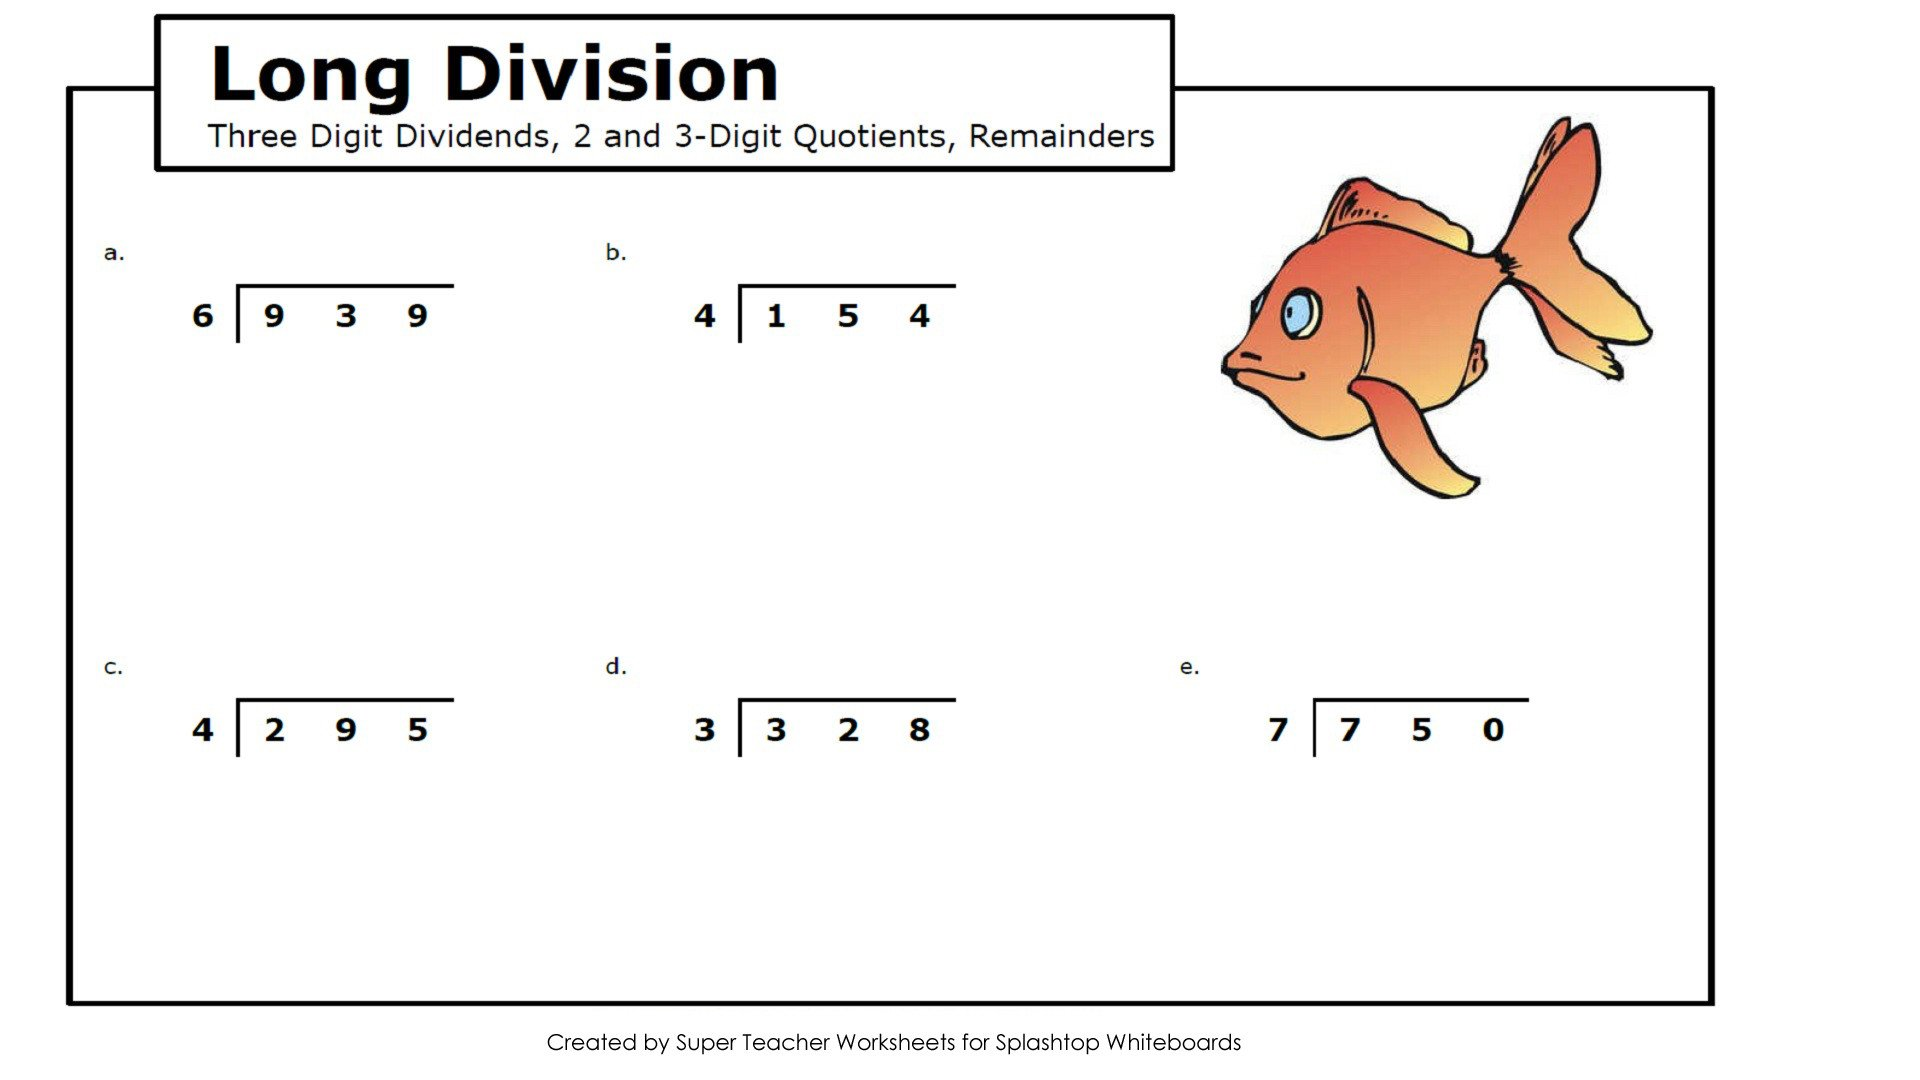 Super Teacher Worksheets Long Division Splashtop Whiteboard Background Graphics